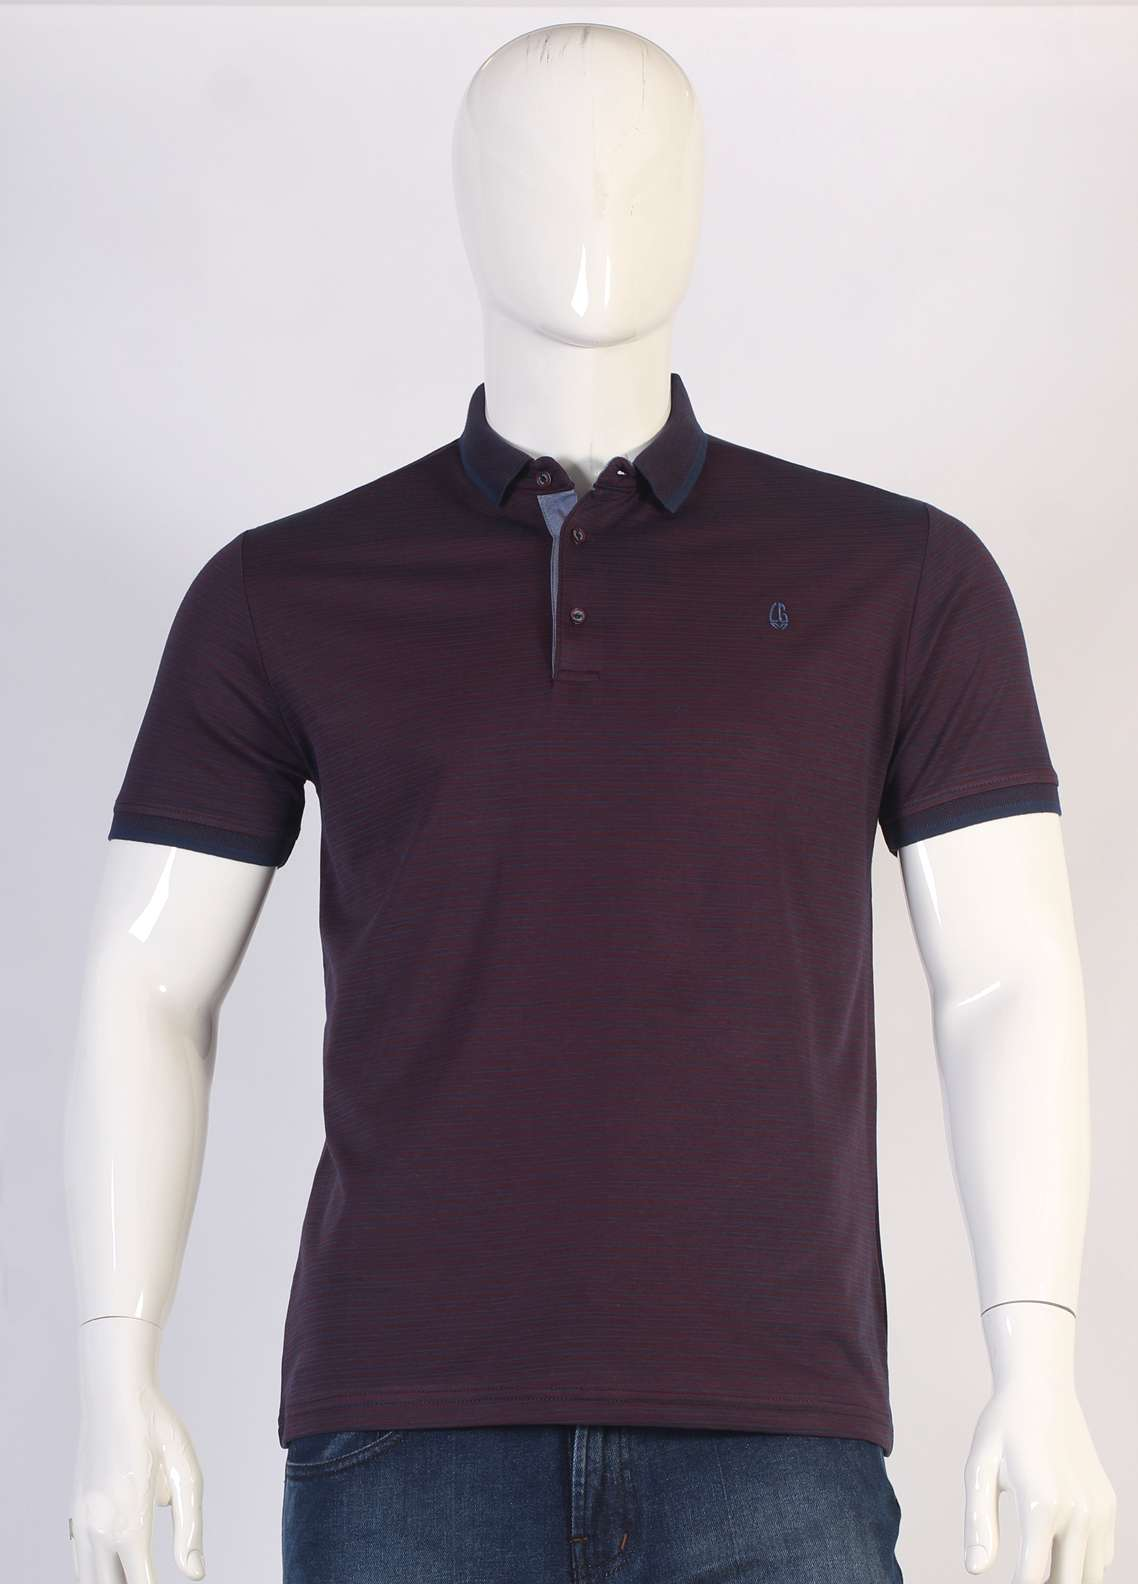 Sanaulla Exclusive Range Jersey Polo T-Shirts for Men - Purple TKM18S 361-05